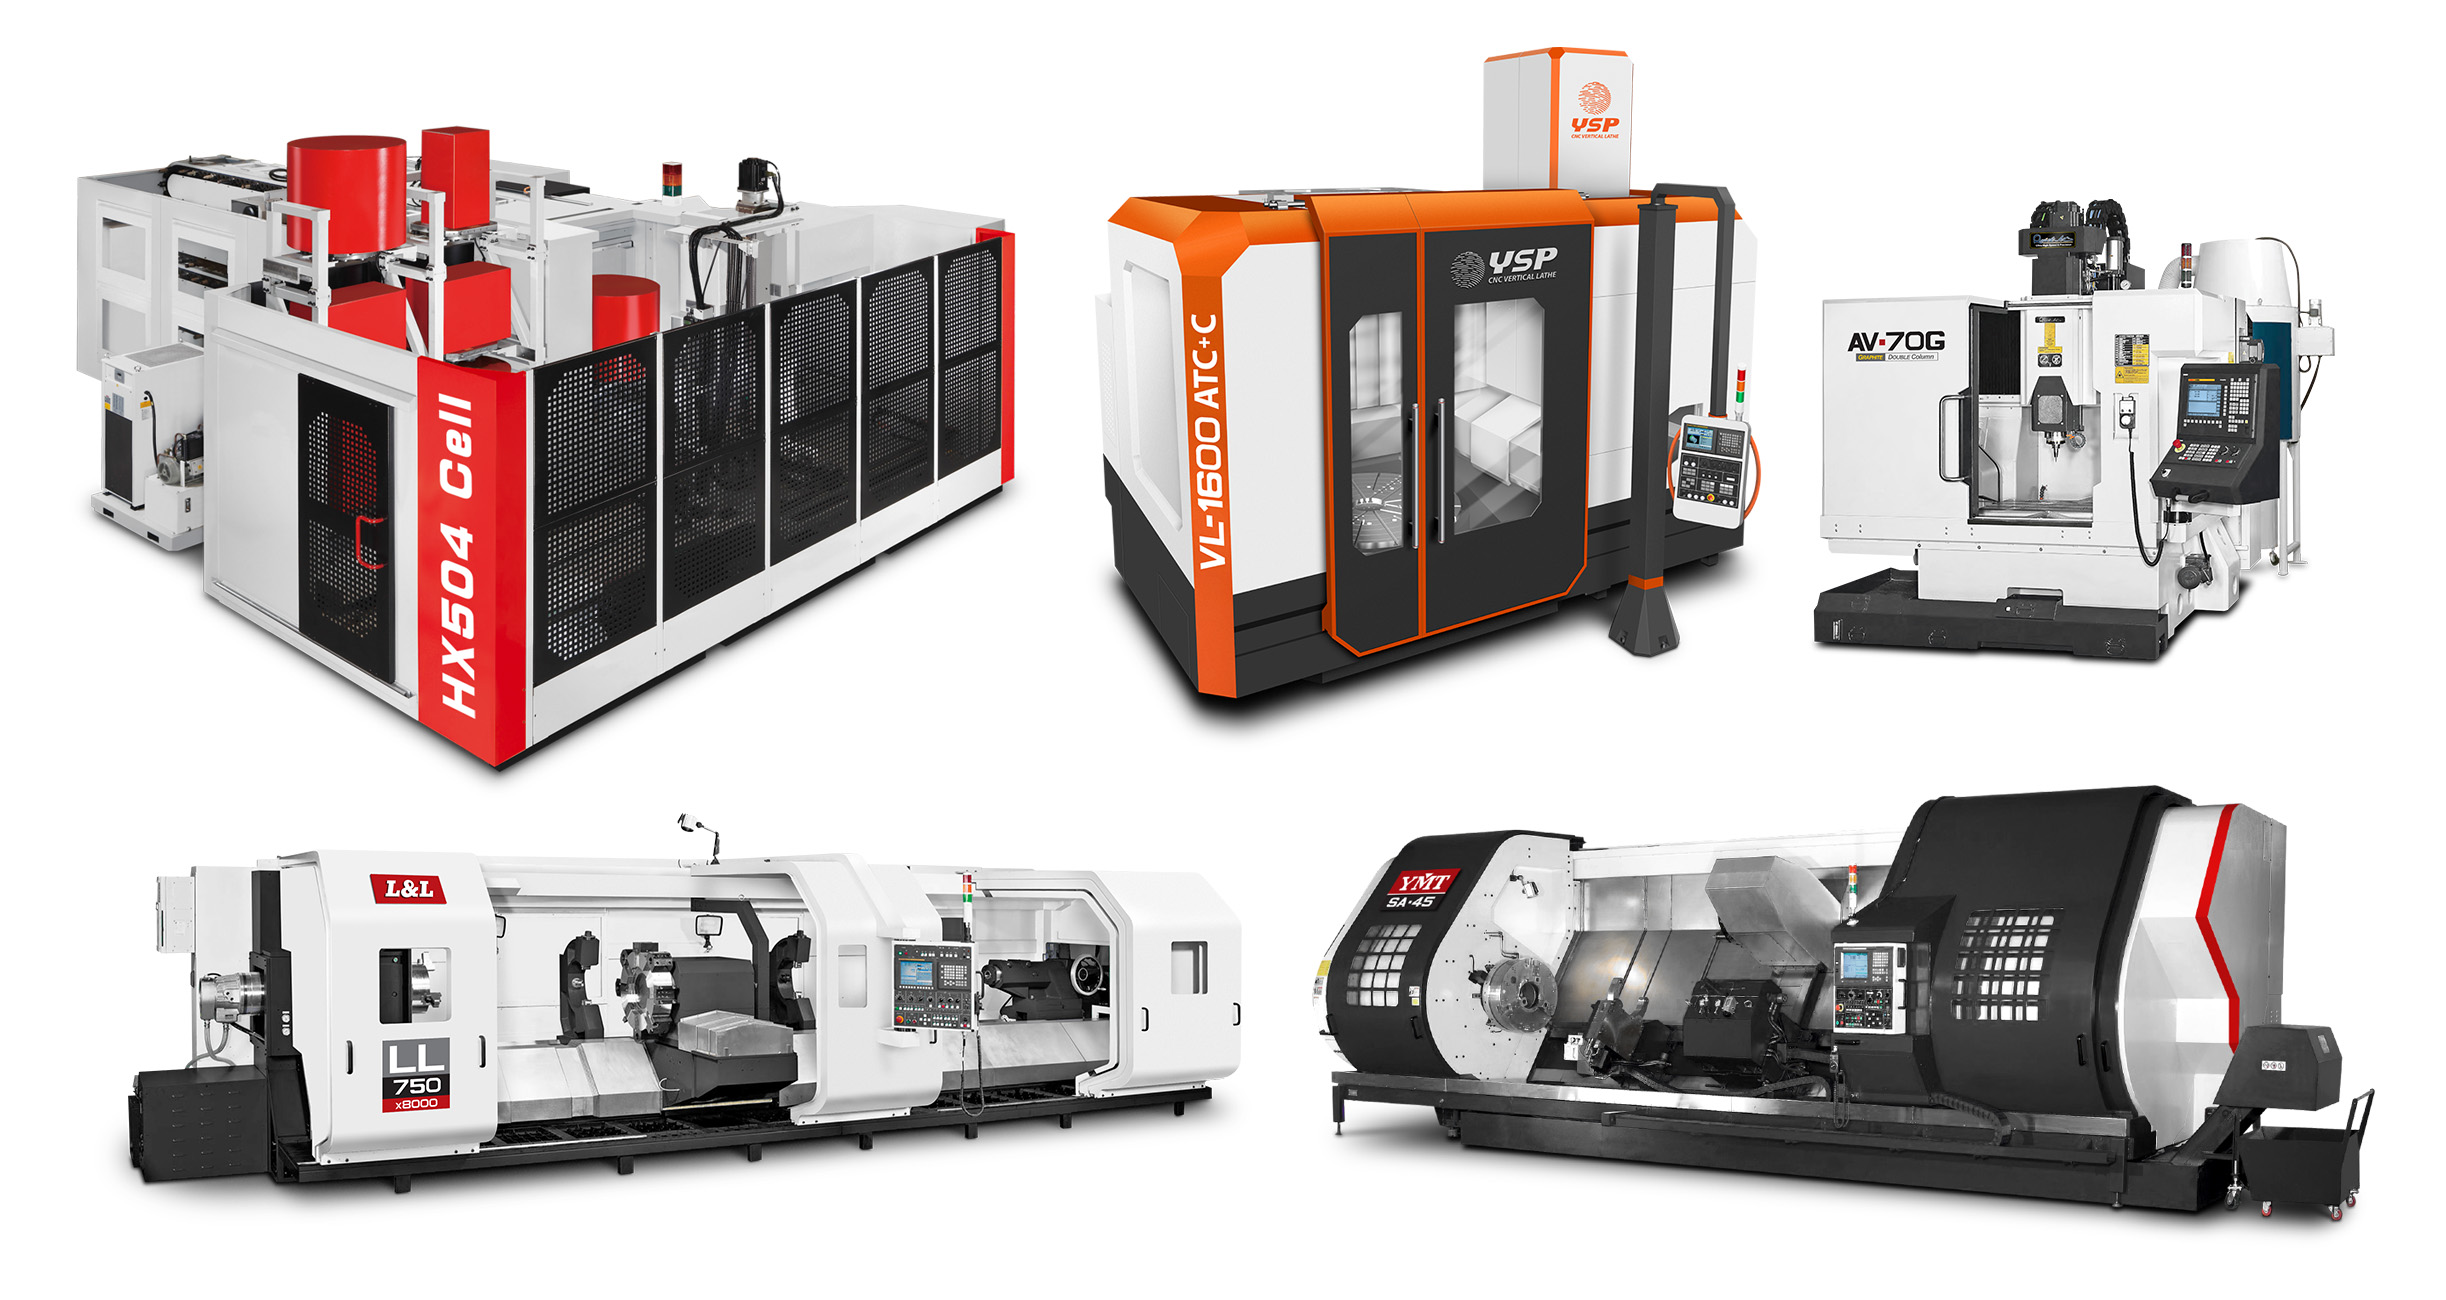 YMT FMC systems, machining centers, and lathes